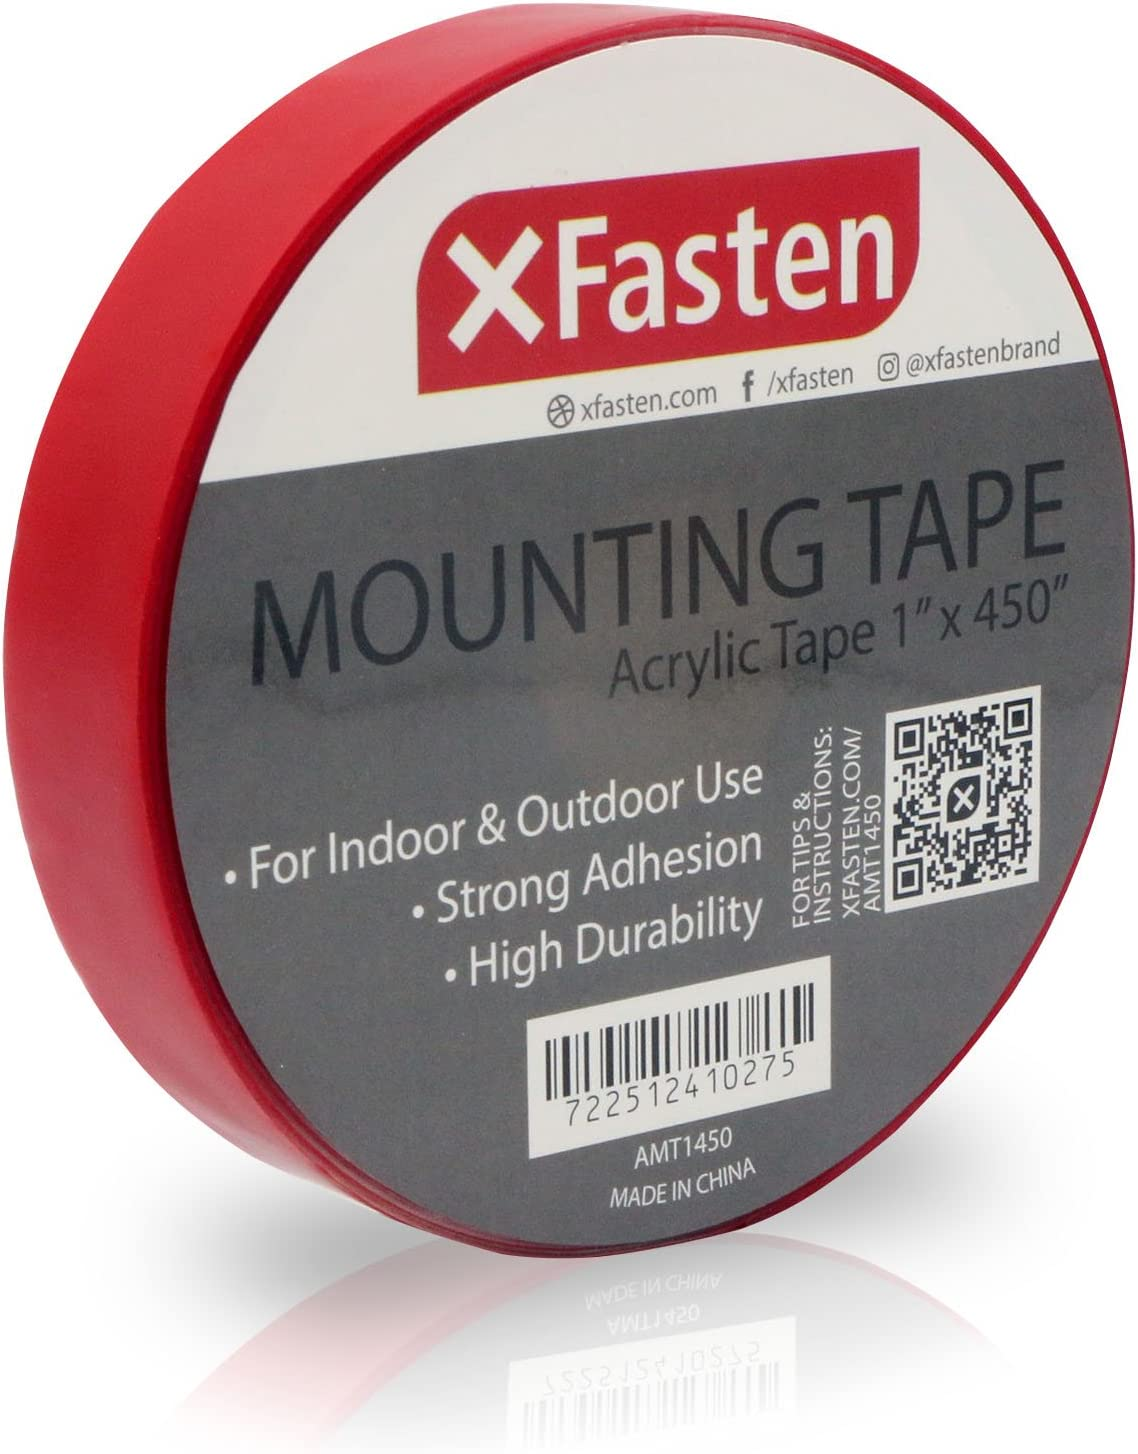 XFasten Double Sided Acrylic Mounting Tape Removable